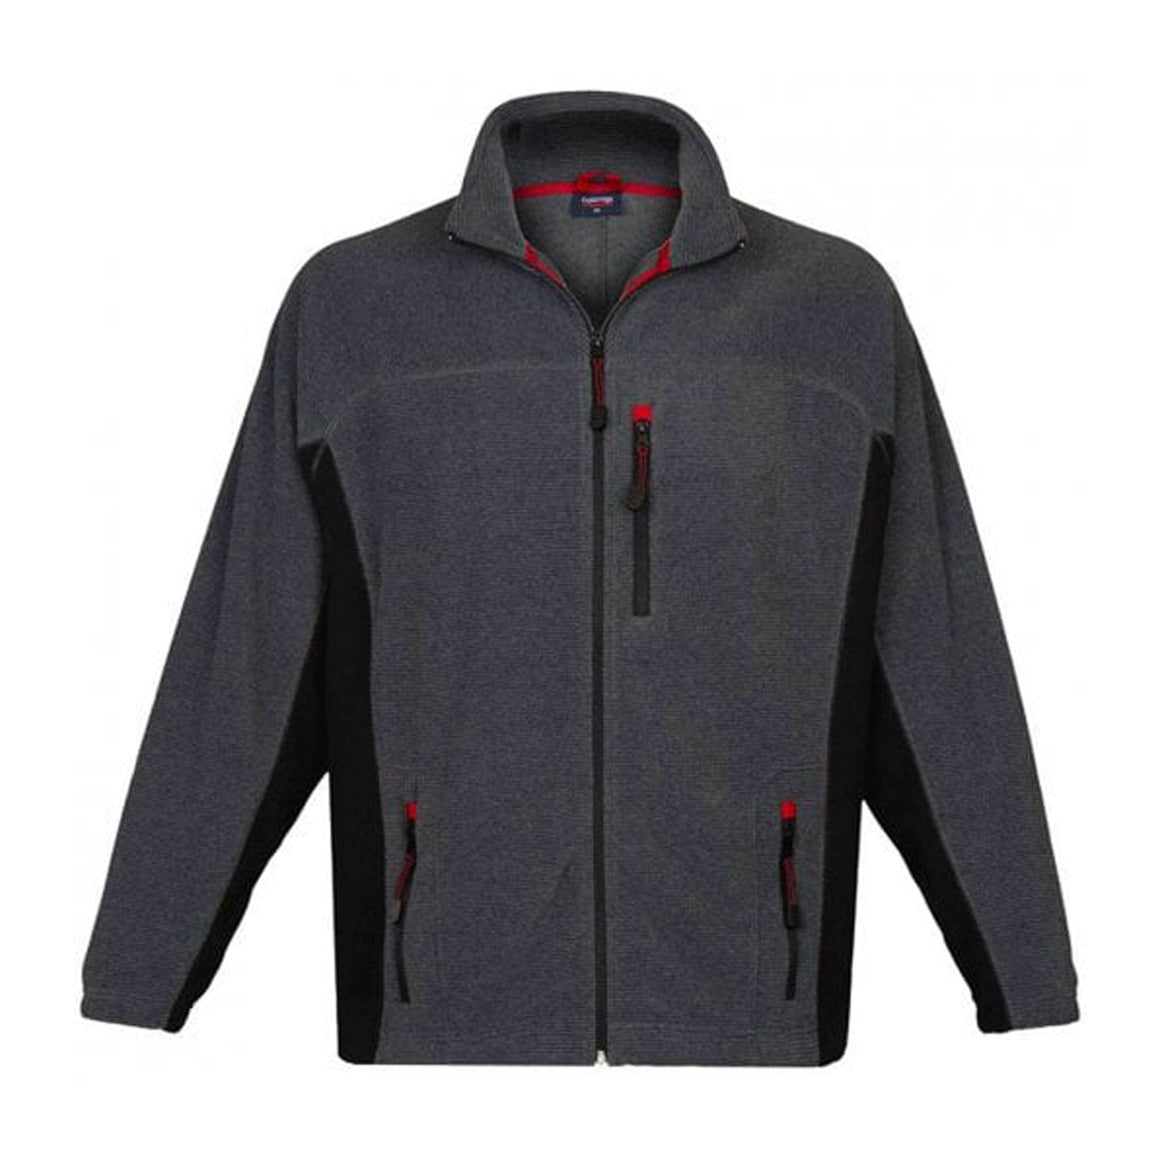 Fancy Fleece Jacket for Men in Charcoal